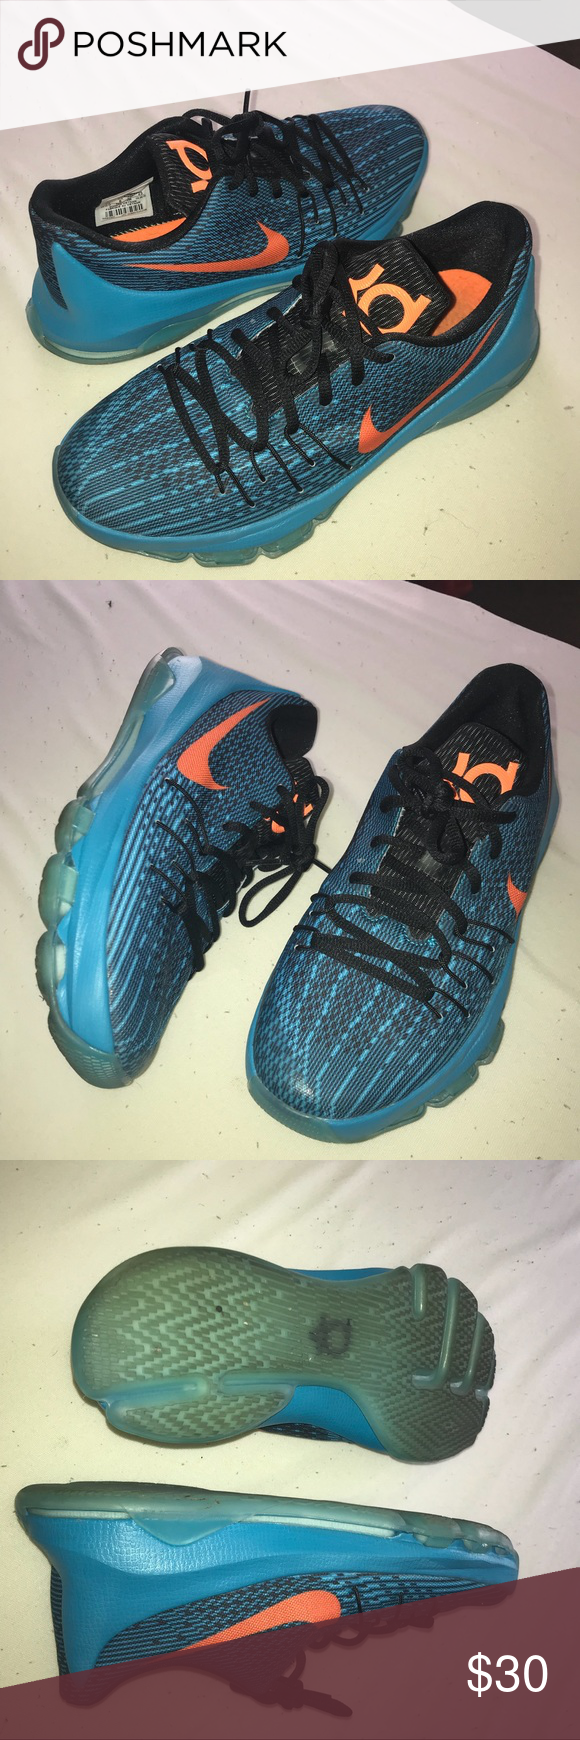 "0fbbcedba240 Nike KD 8 Nike KD 8 ""The Road Game"" Size 7y Colorway  BLUE LAGOON ..."